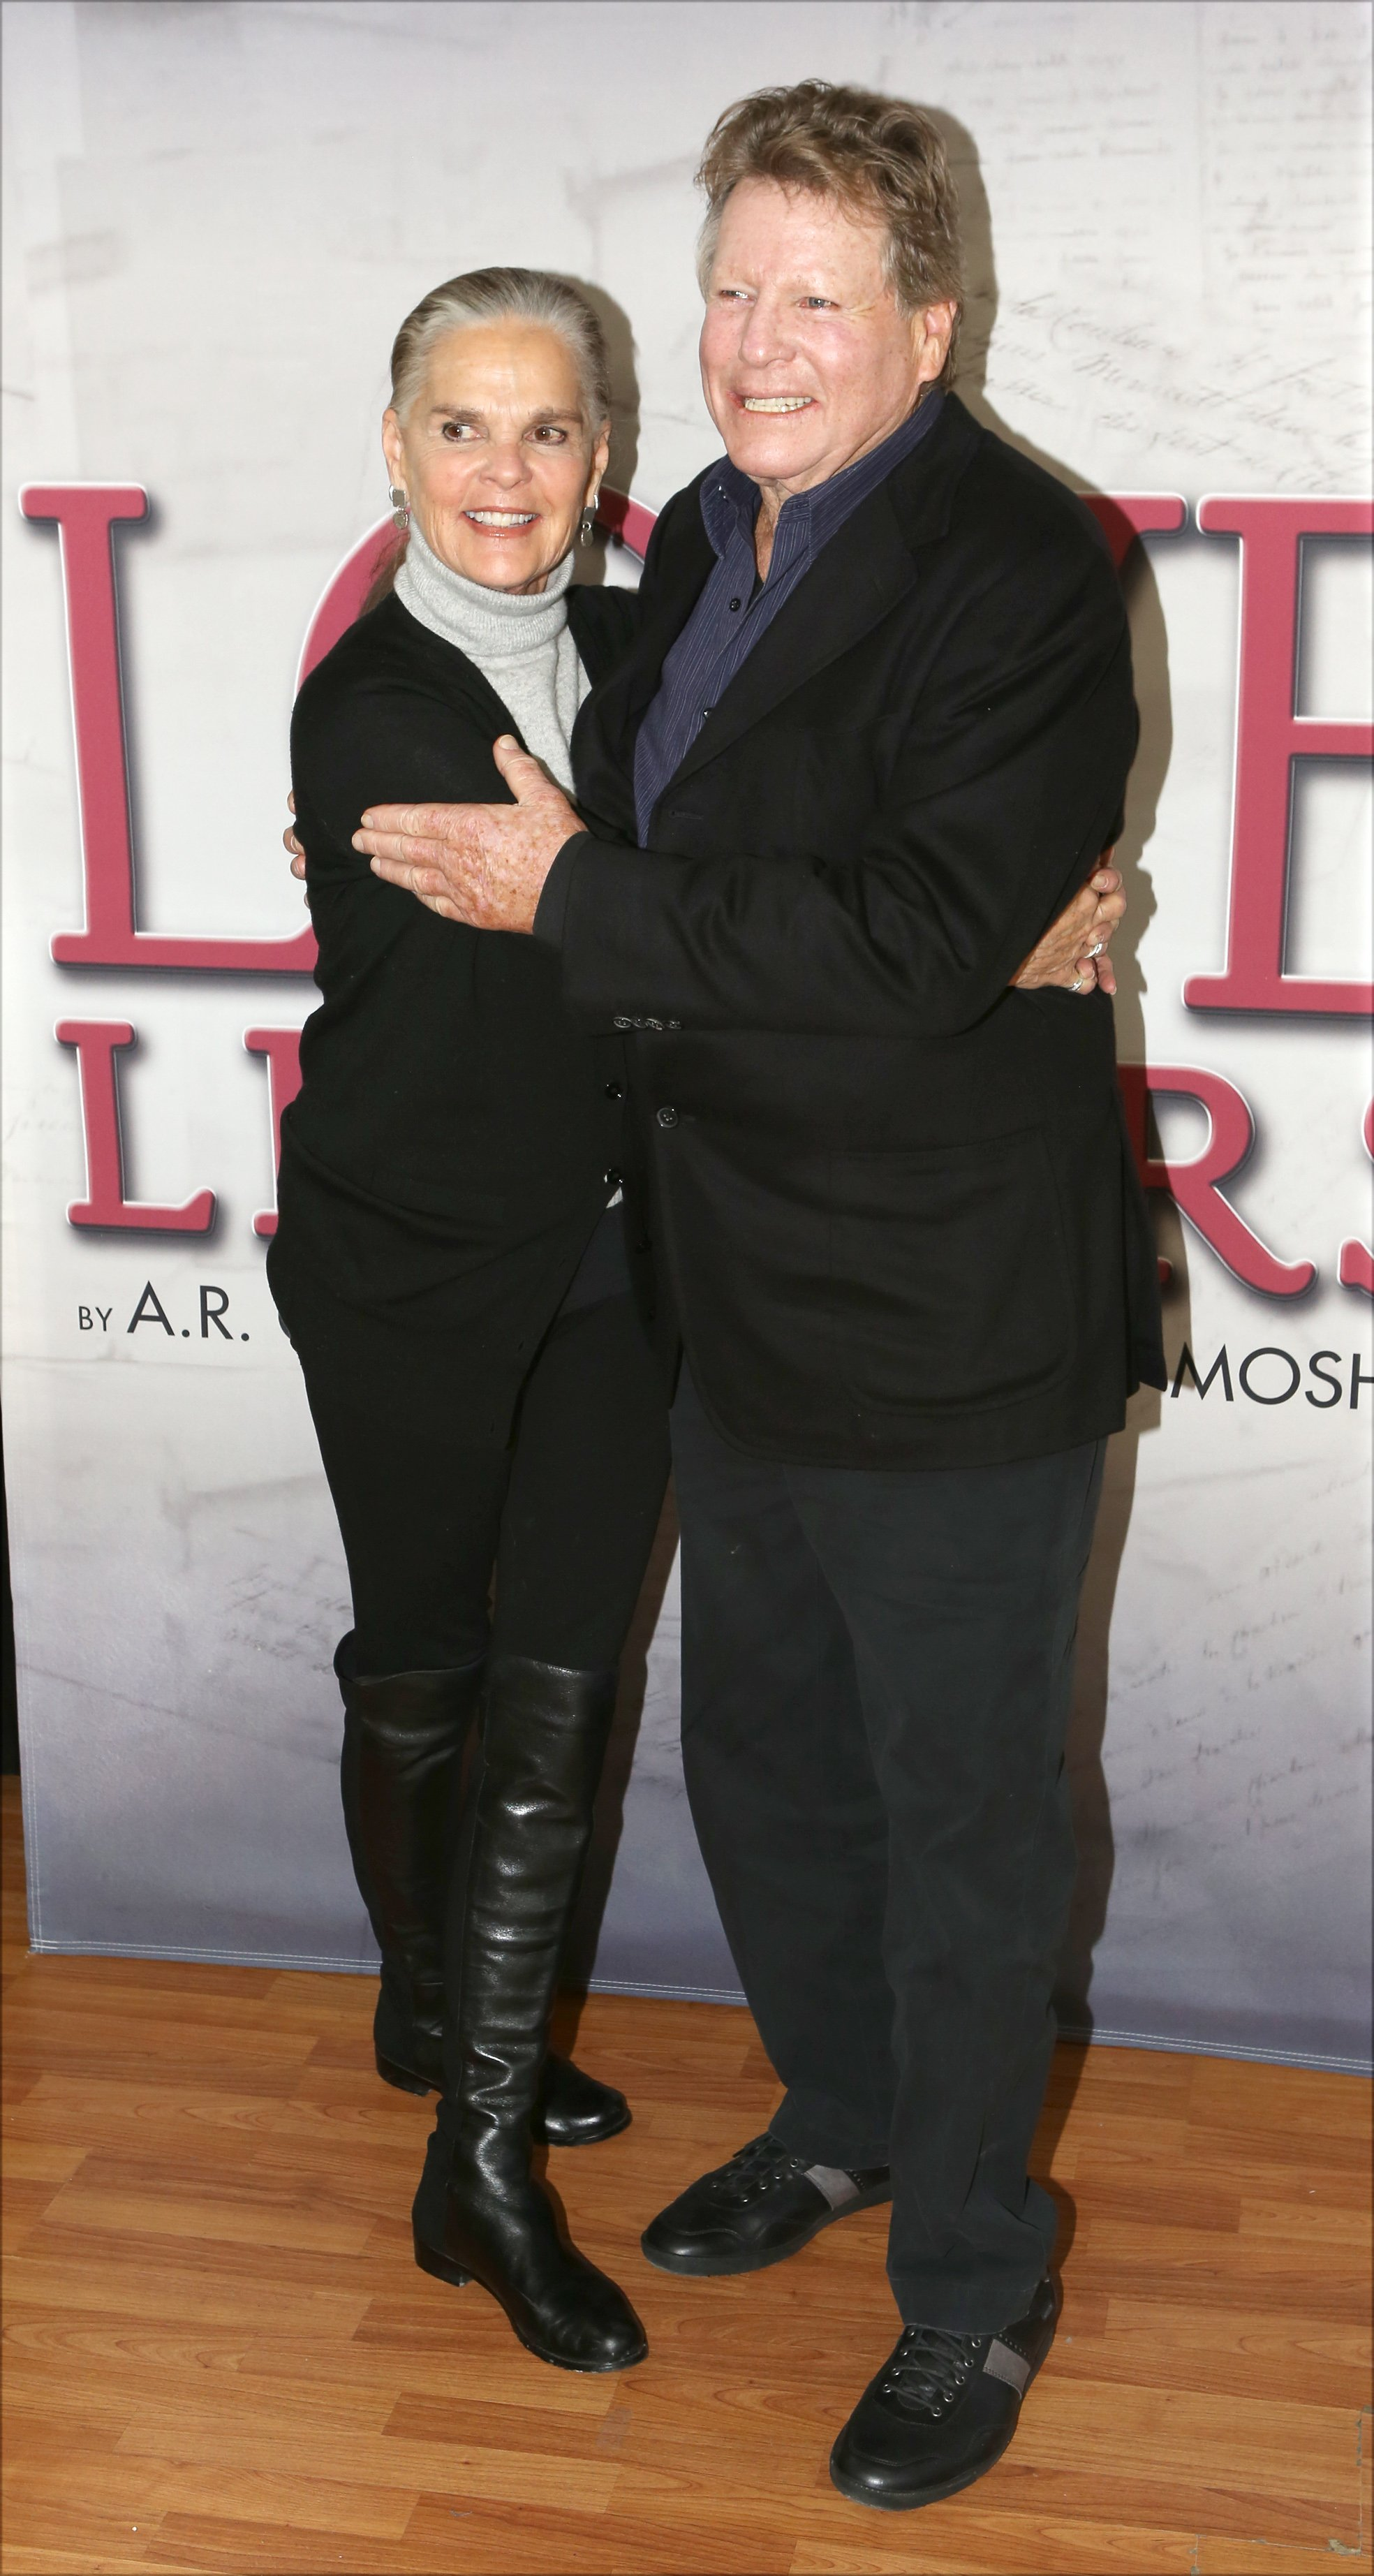 Ali MacGraw and Ryan O'Neal attend a photo call for their upcoming touring production of 'Love Letters' at The Shelter Studios Penthouse on February 24, 2015 in New York City | Photo: Getty Images